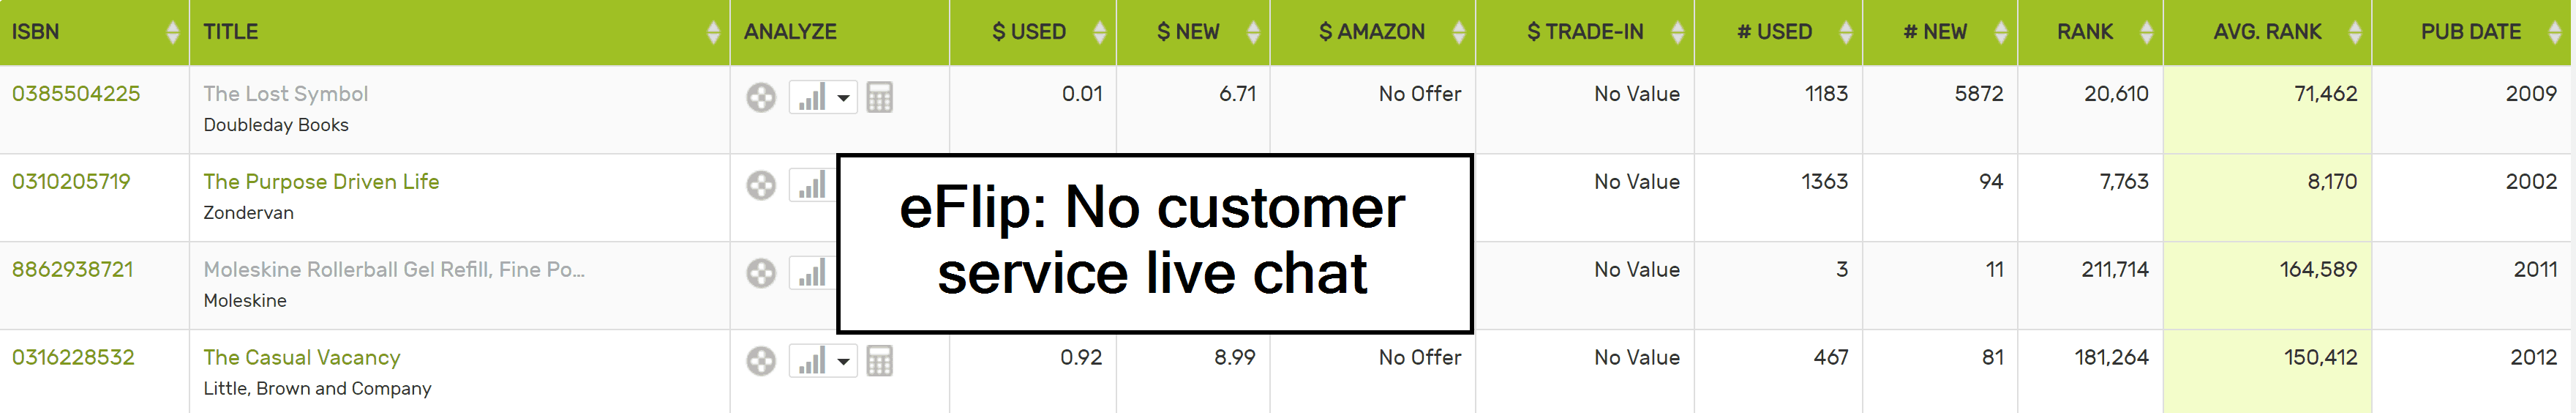 eFlip No Customer Service Live Chat